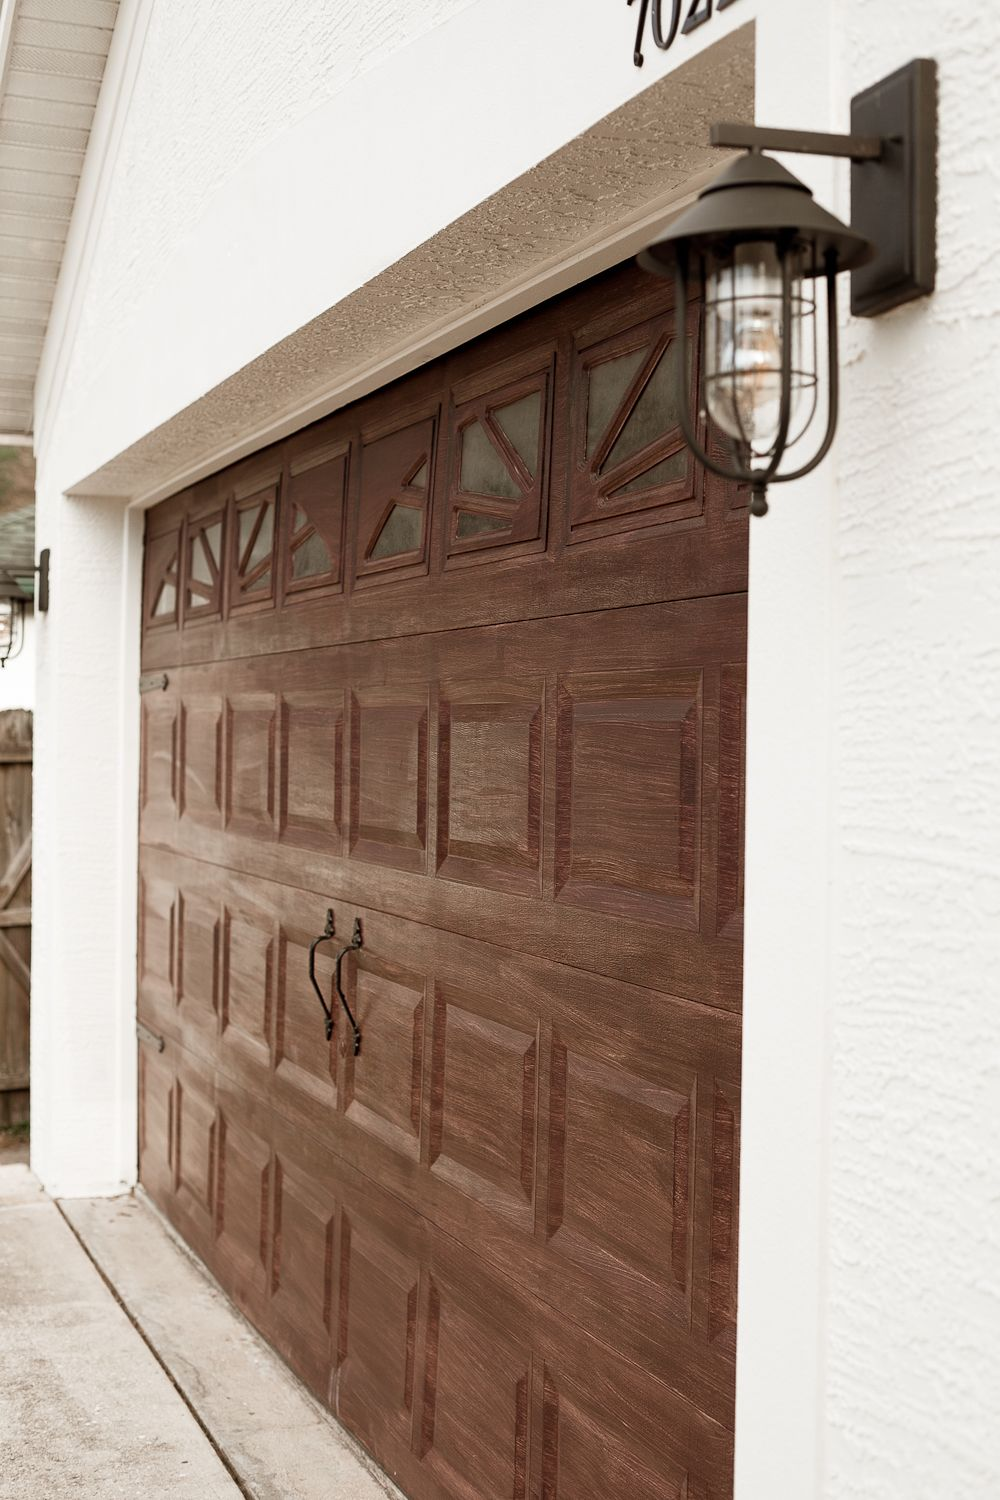 DIY Garage Door Makeover Garage doors, Diy garage door